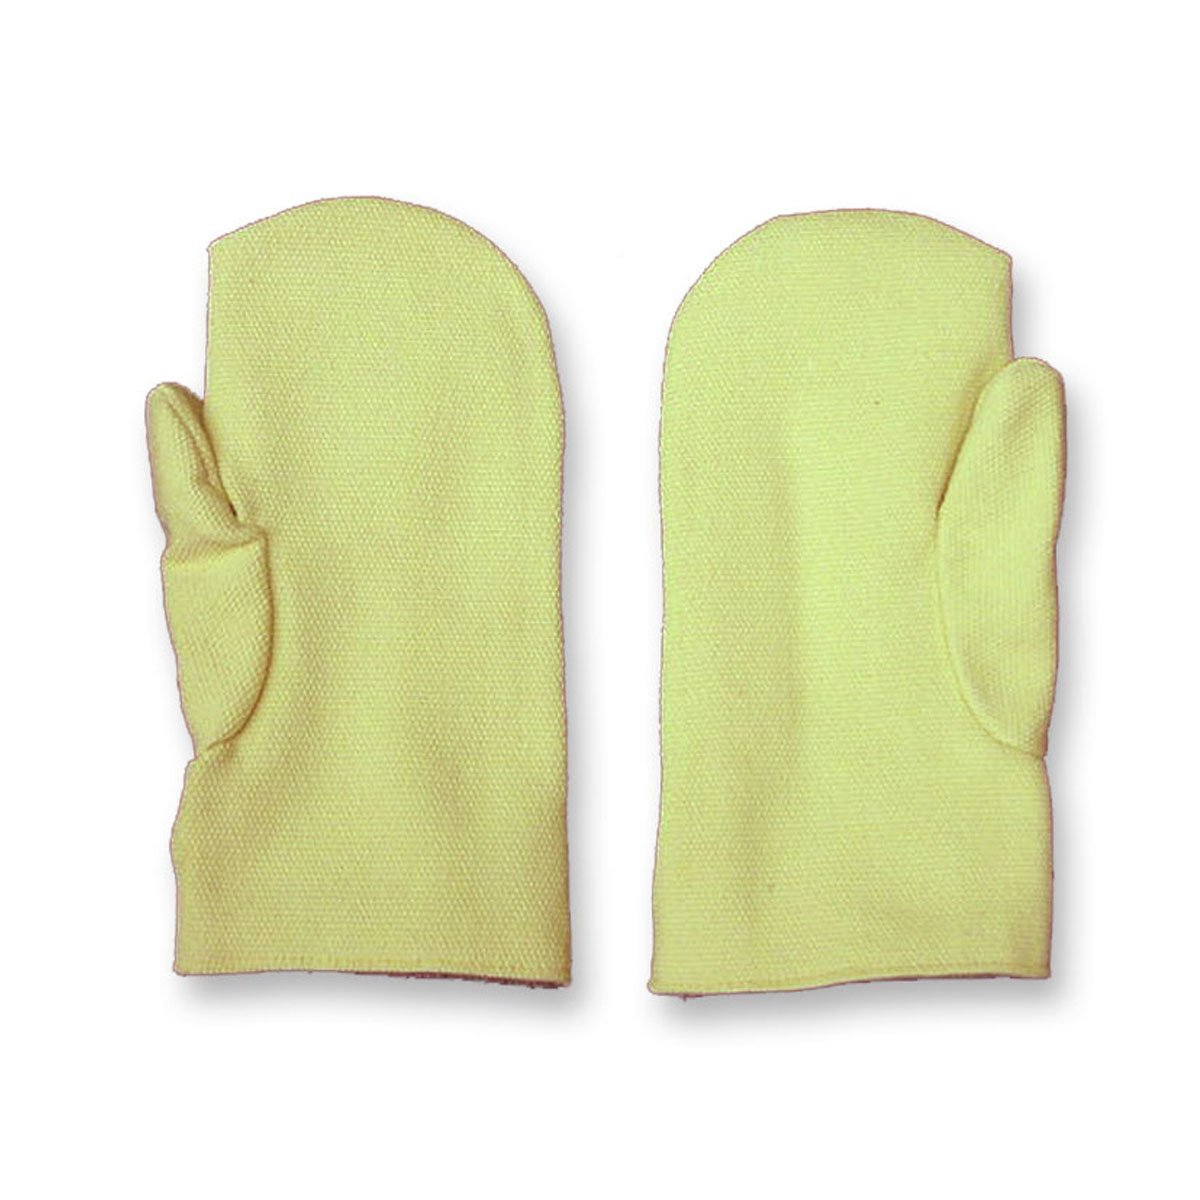 Chicago Protective Apparel 174-KV Kevlar Heat Resistant SAFETY Mitten